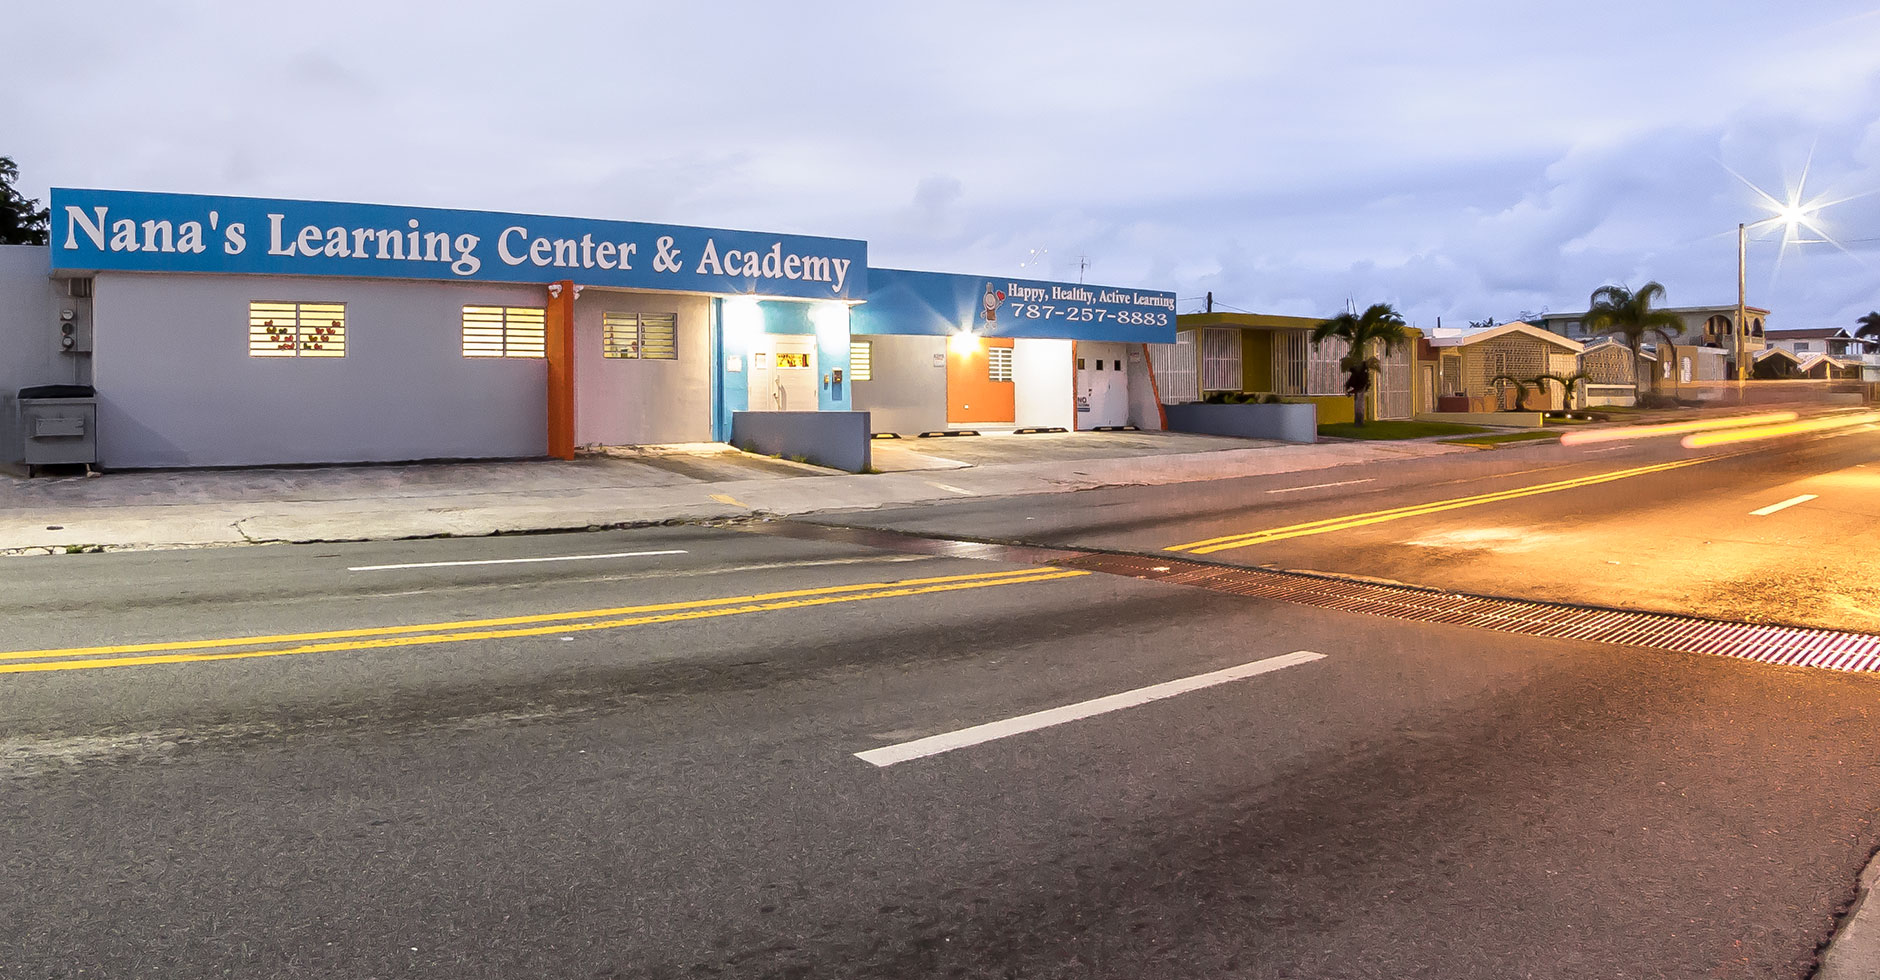 Nana's Learning Center and Academy